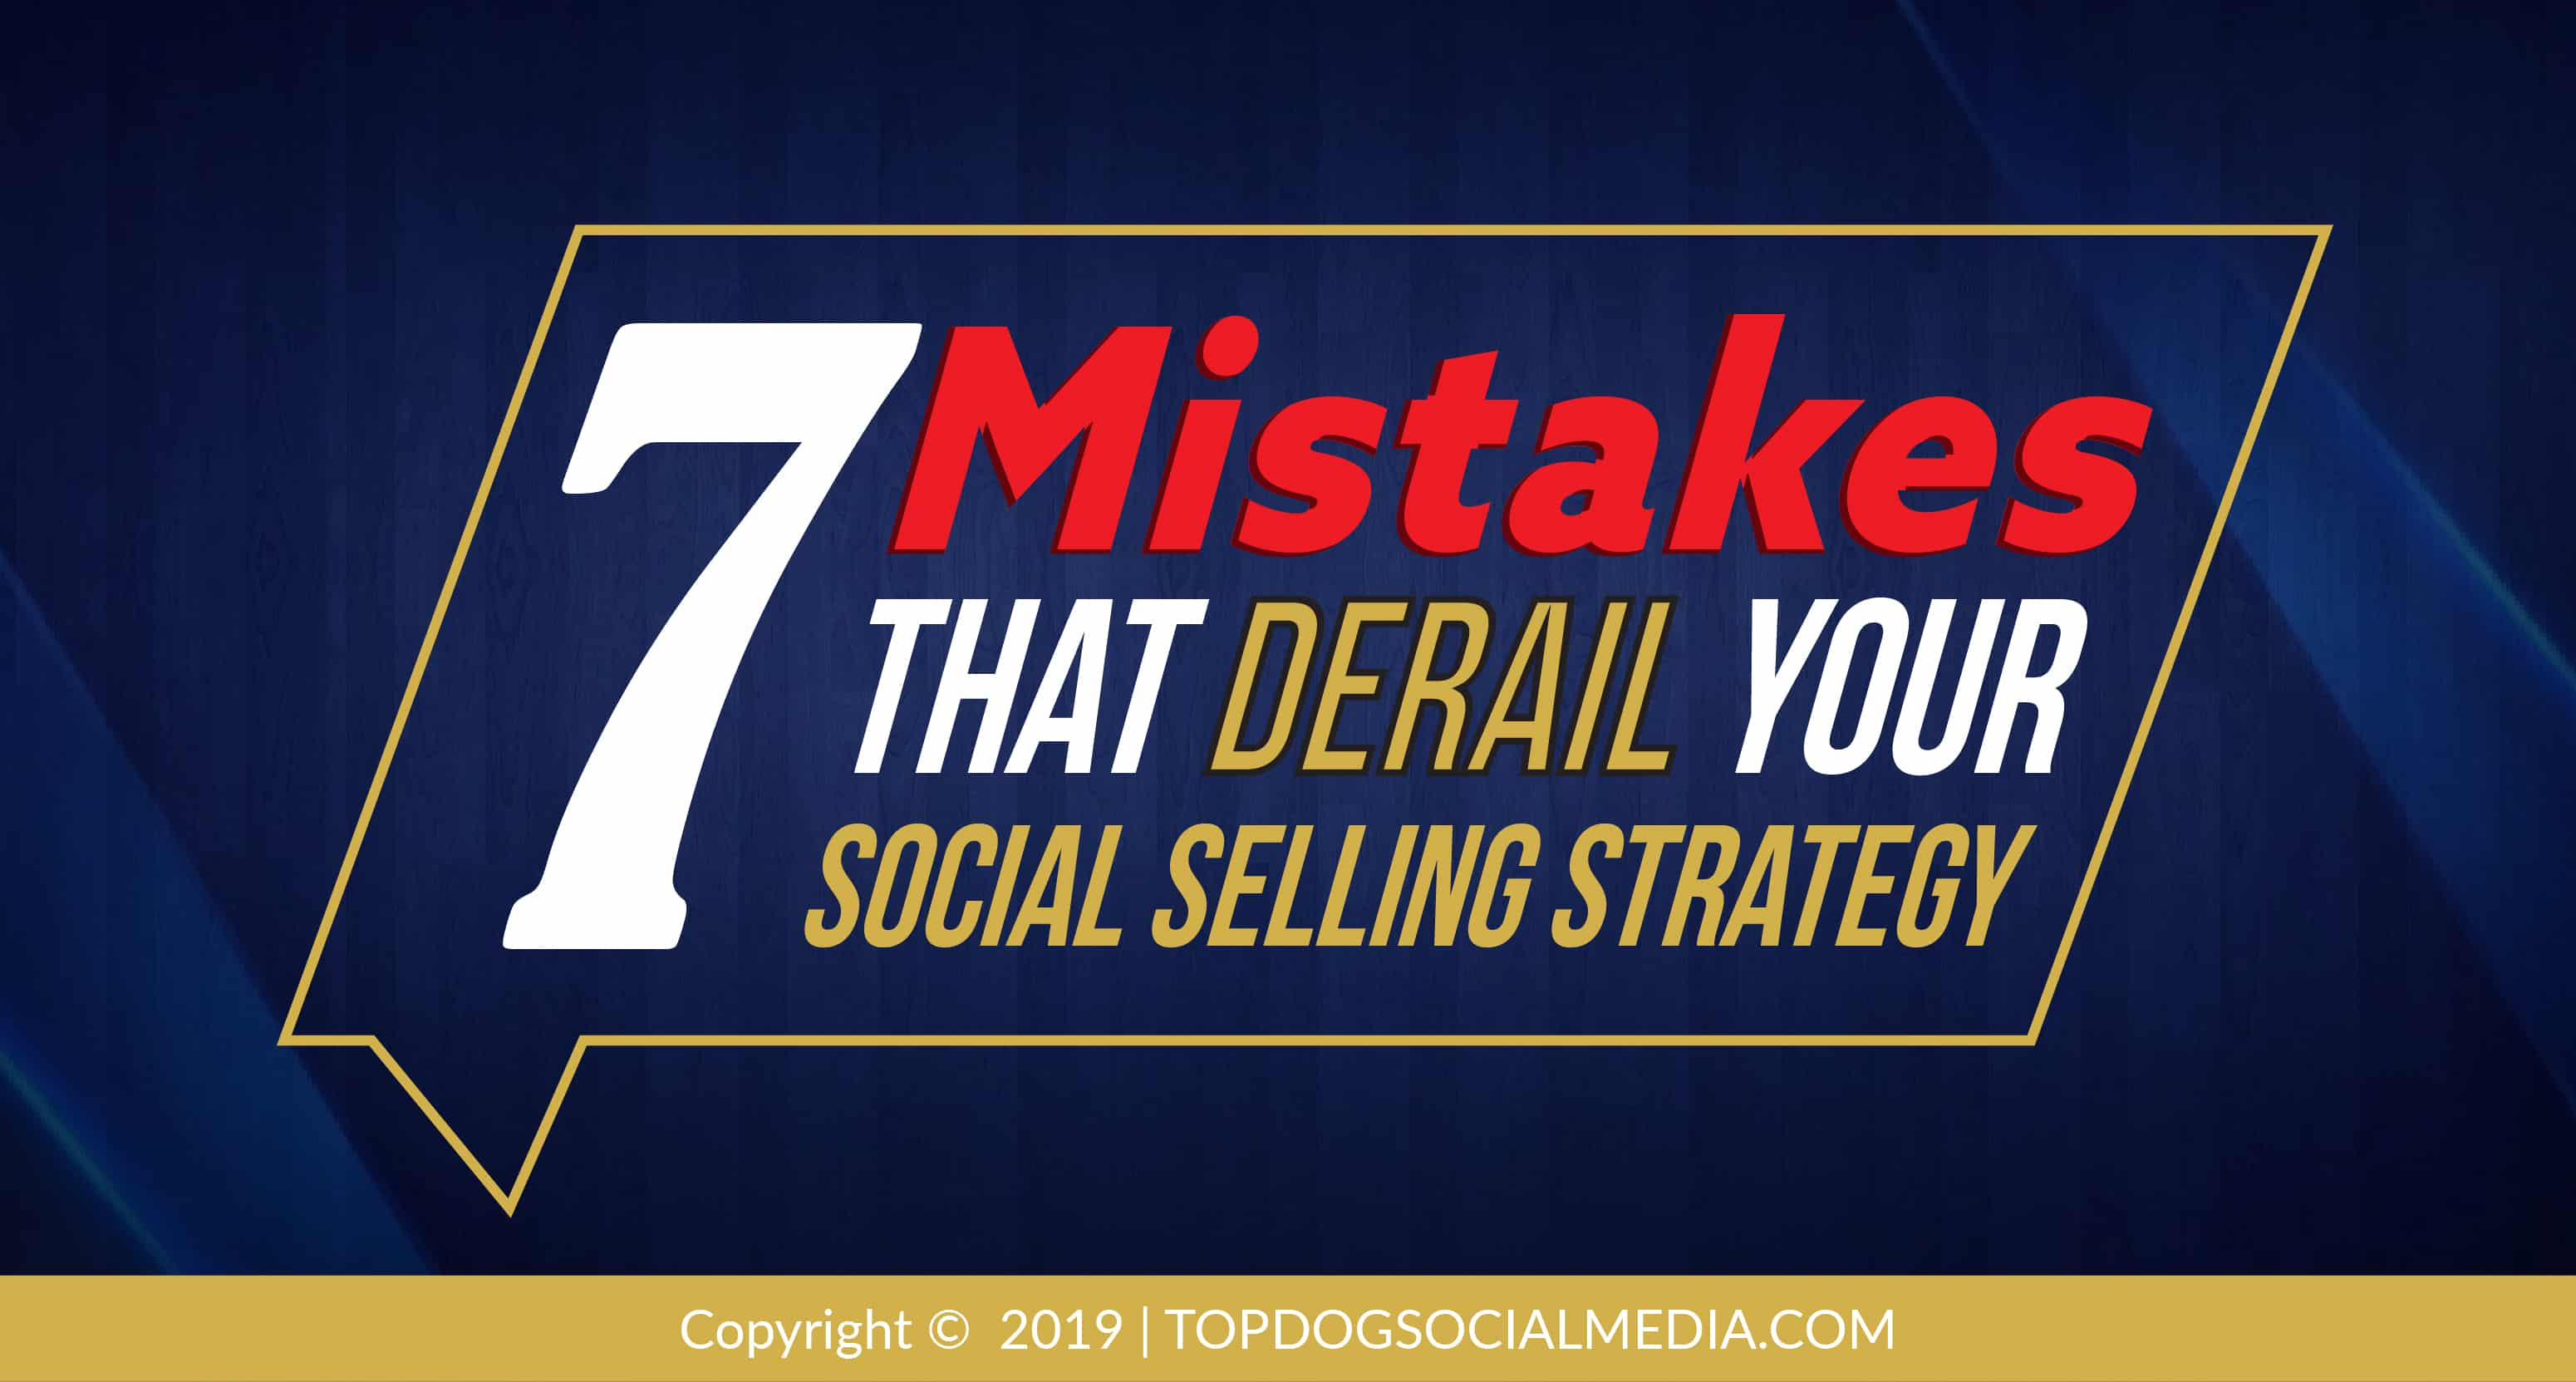 7 Mistakes That Derail Your Social Selling Strategy